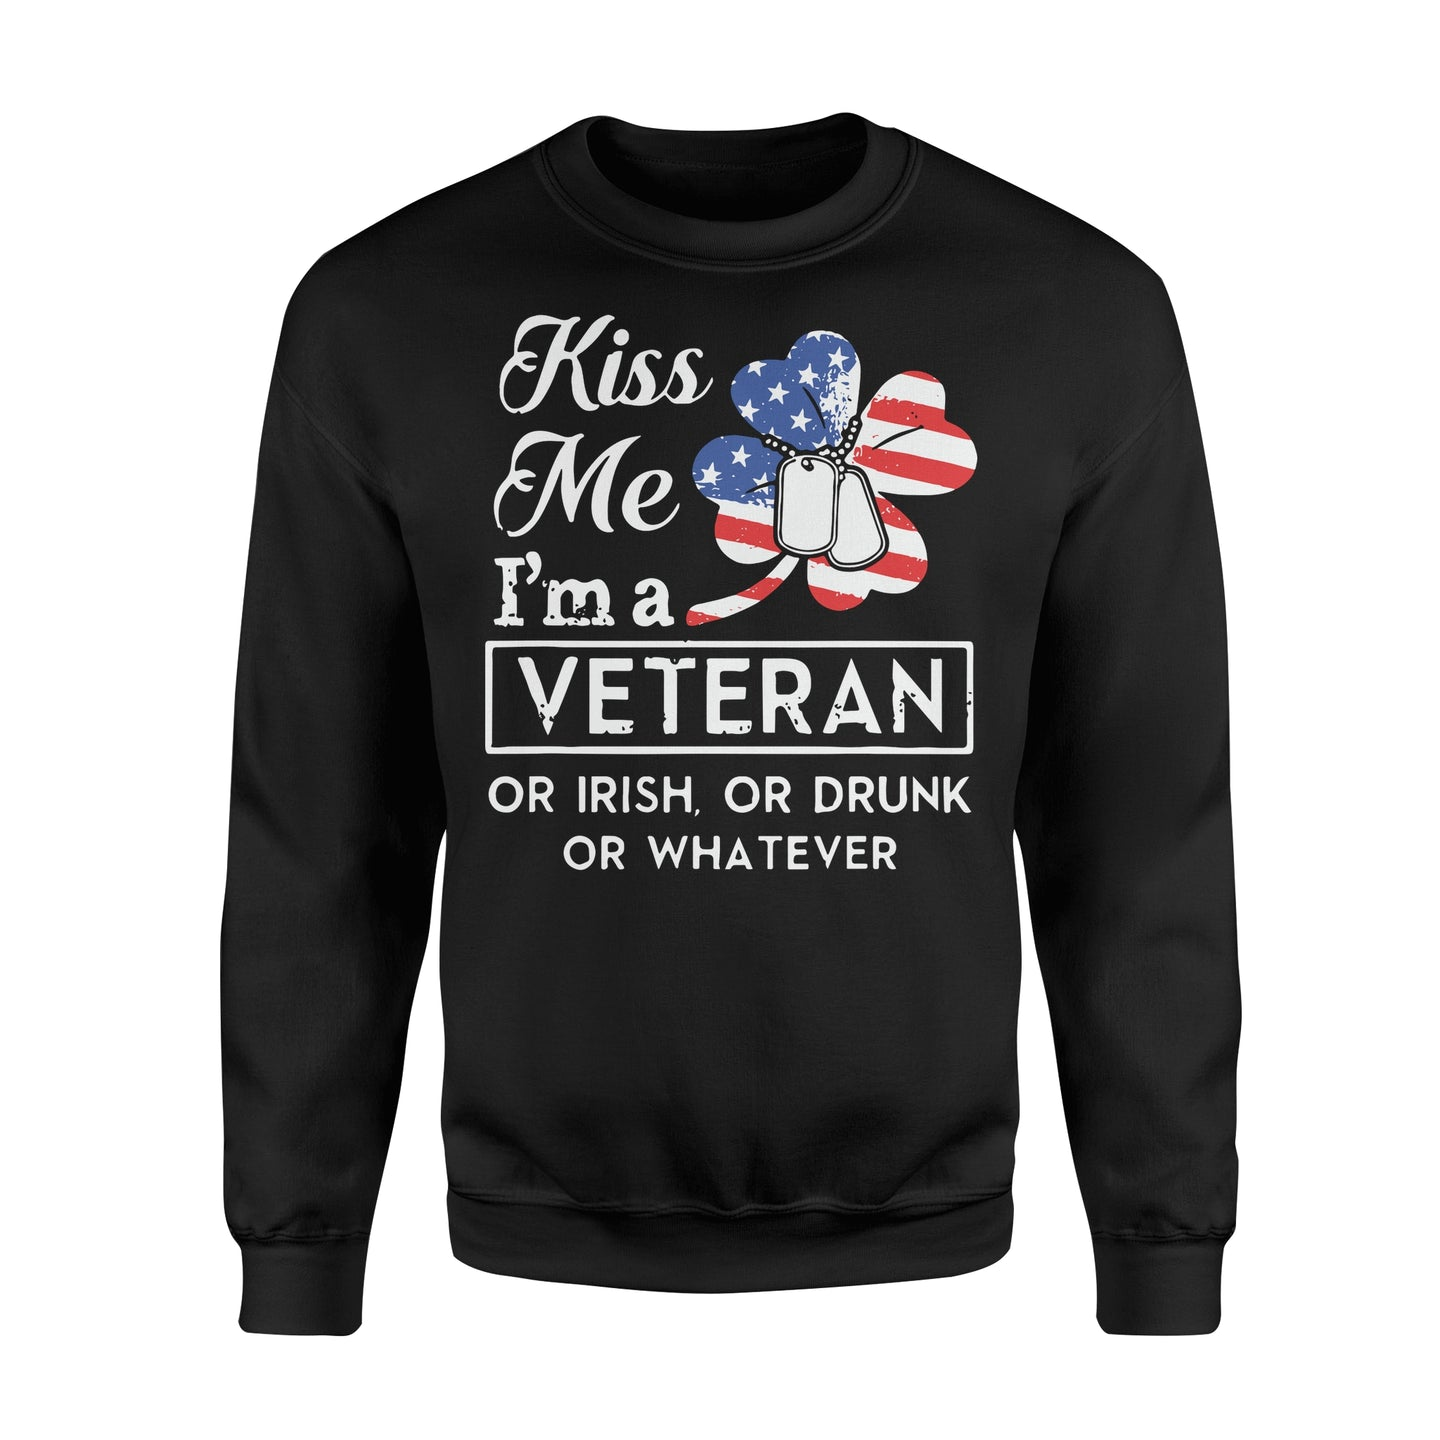 Kiss Me I'm A Veteran Or Irish Or Drunk Or Whatever - Standard Fleece Sweatshirt Apparel S / Black